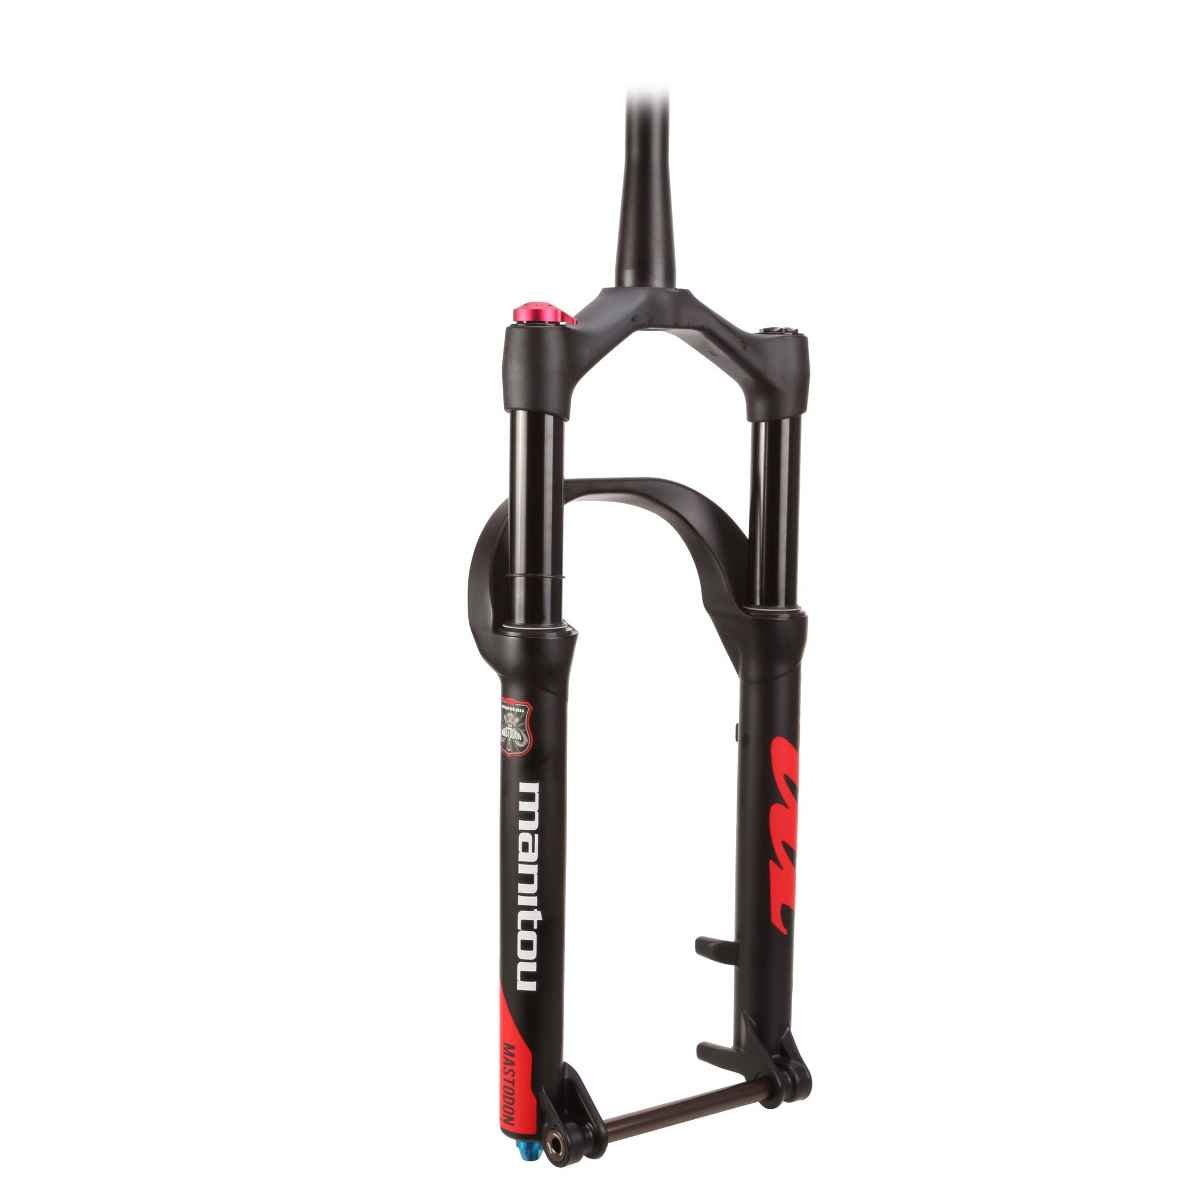 Manitou Mastodon Comp Fat Bike Fork , 120 mm旅行、15 x 150 mm車軸、Tapered、マットブラック、拡張version-fits Up To A 5.15インチタイヤ B071NQSWJC